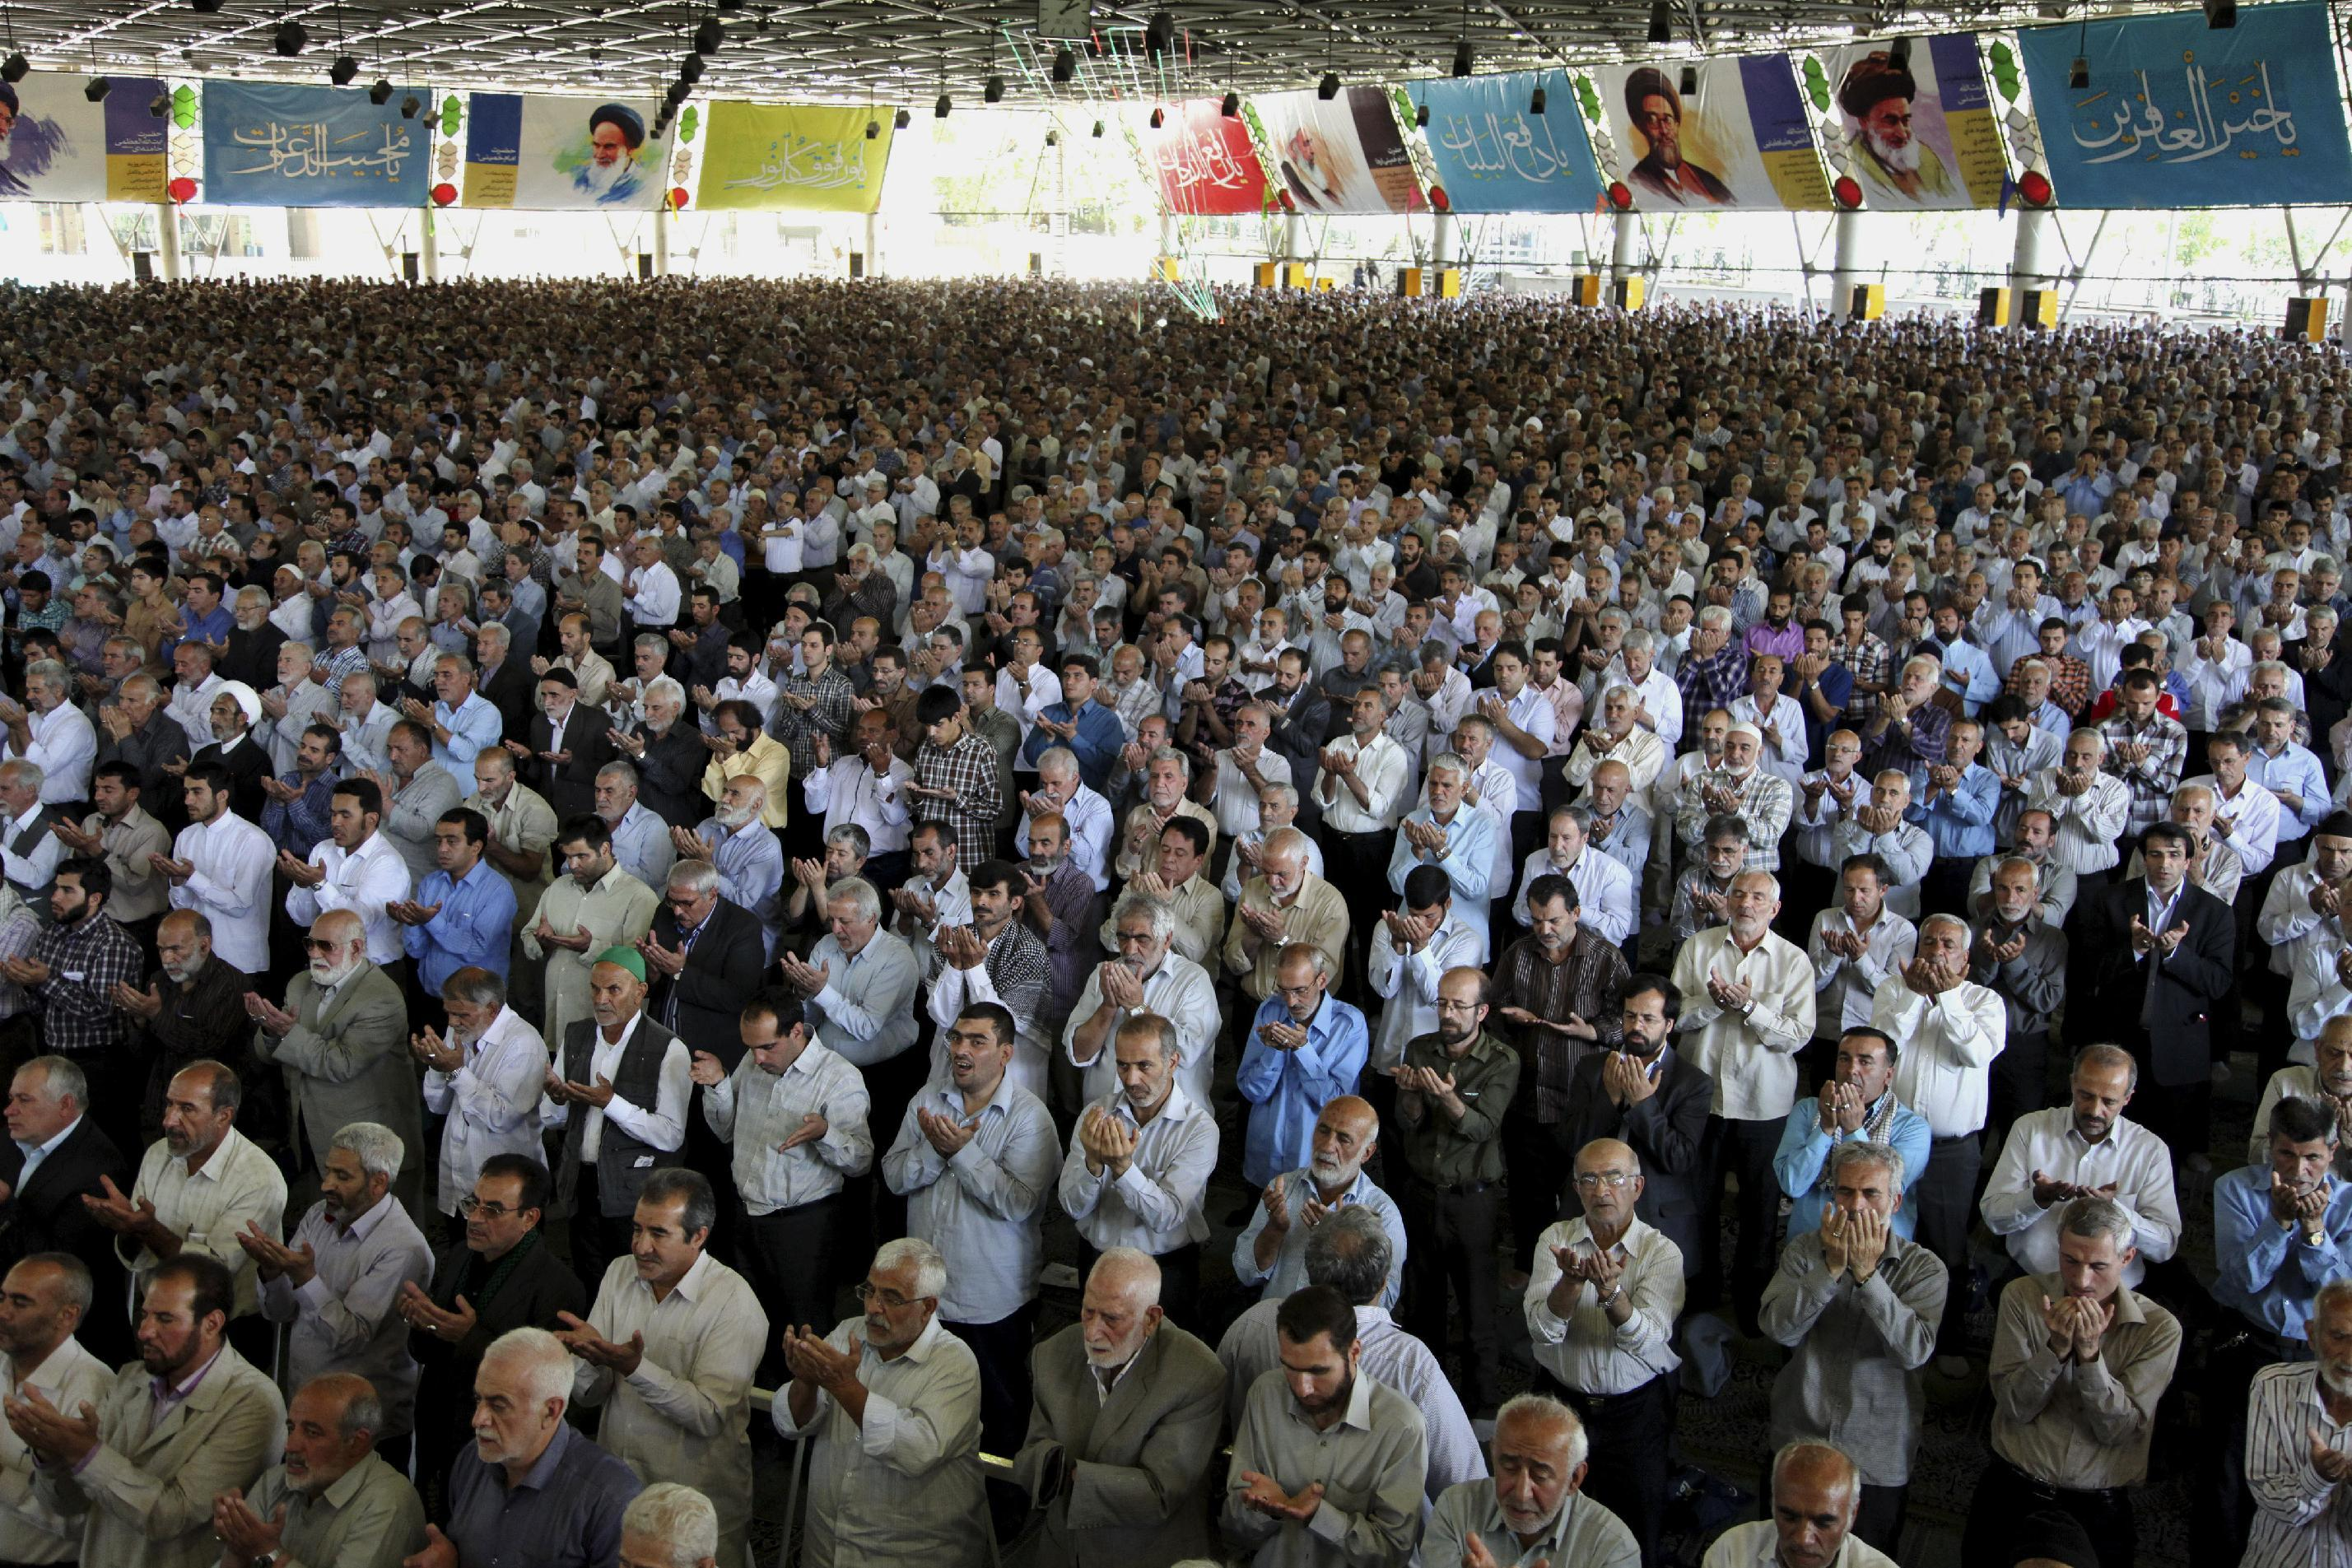 Iranian worshippers perform their Friday prayers at the Tehran University campus in Tehran, Iran, Friday, June 7, 2013. Iranian Presidential election will be held on June 14, 2013. (AP Photo/Ebrahim Noroozi)